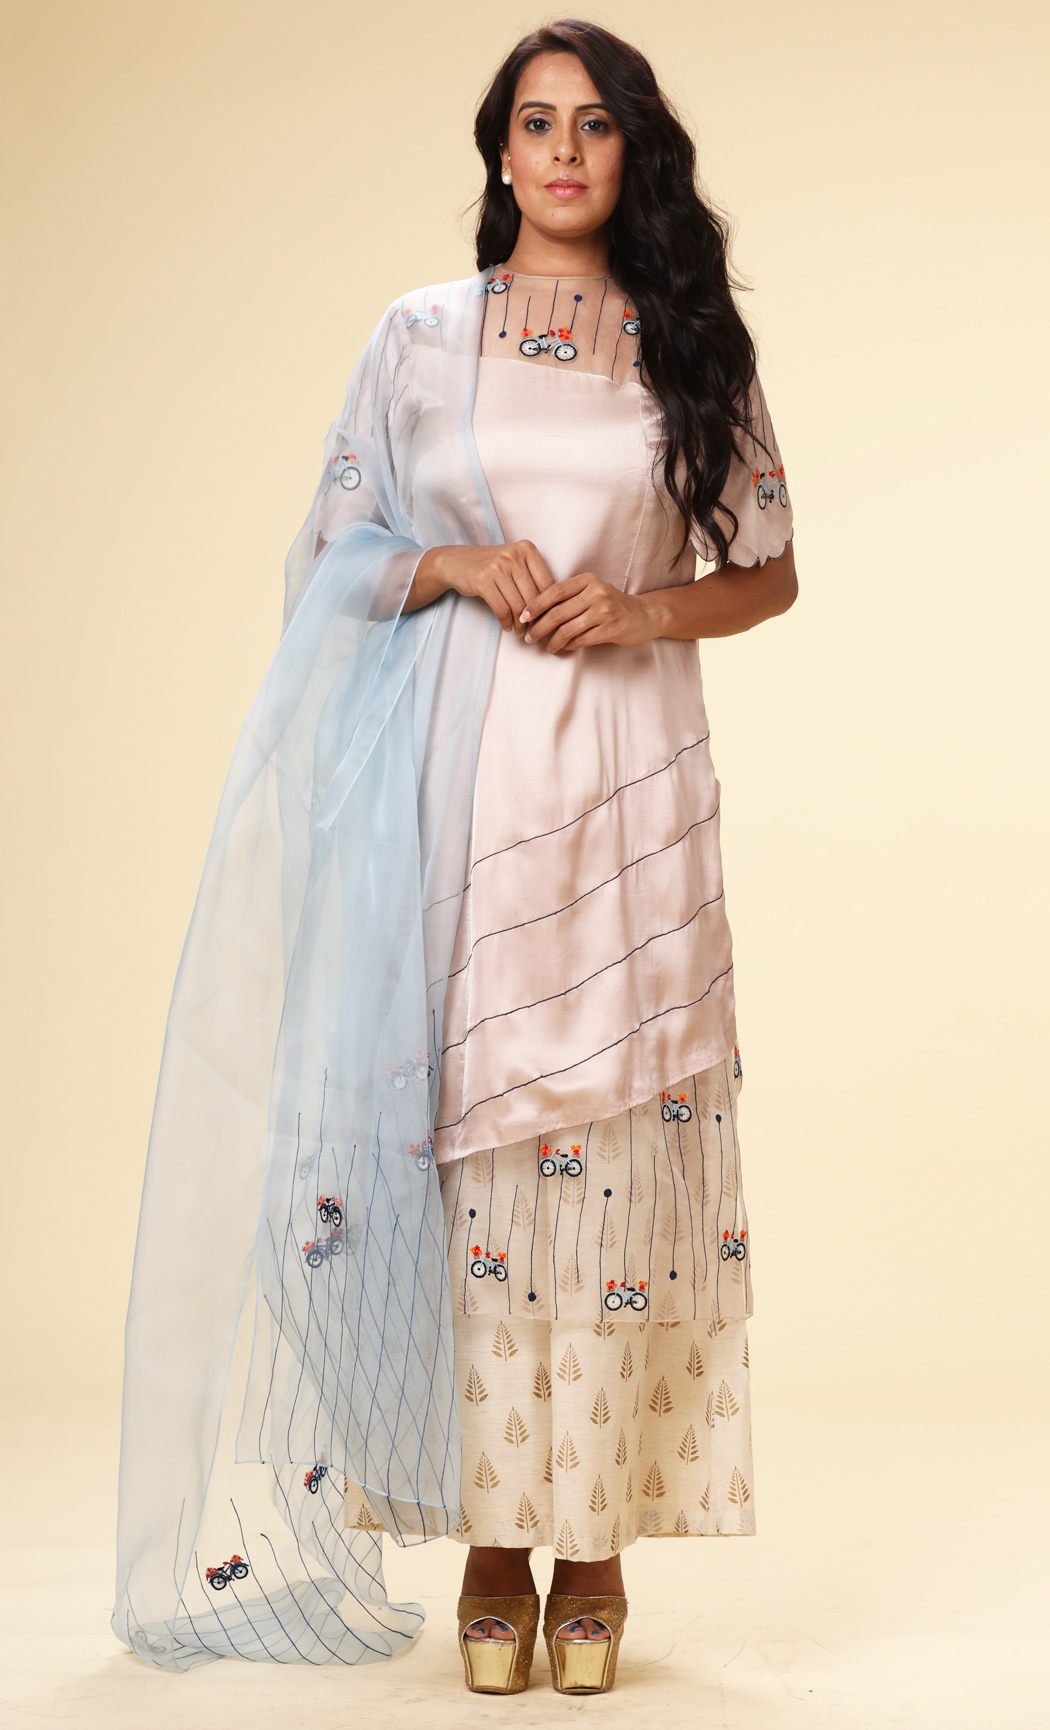 Peach Embroidered Short Kurta and Dupatta Set - Buy Online